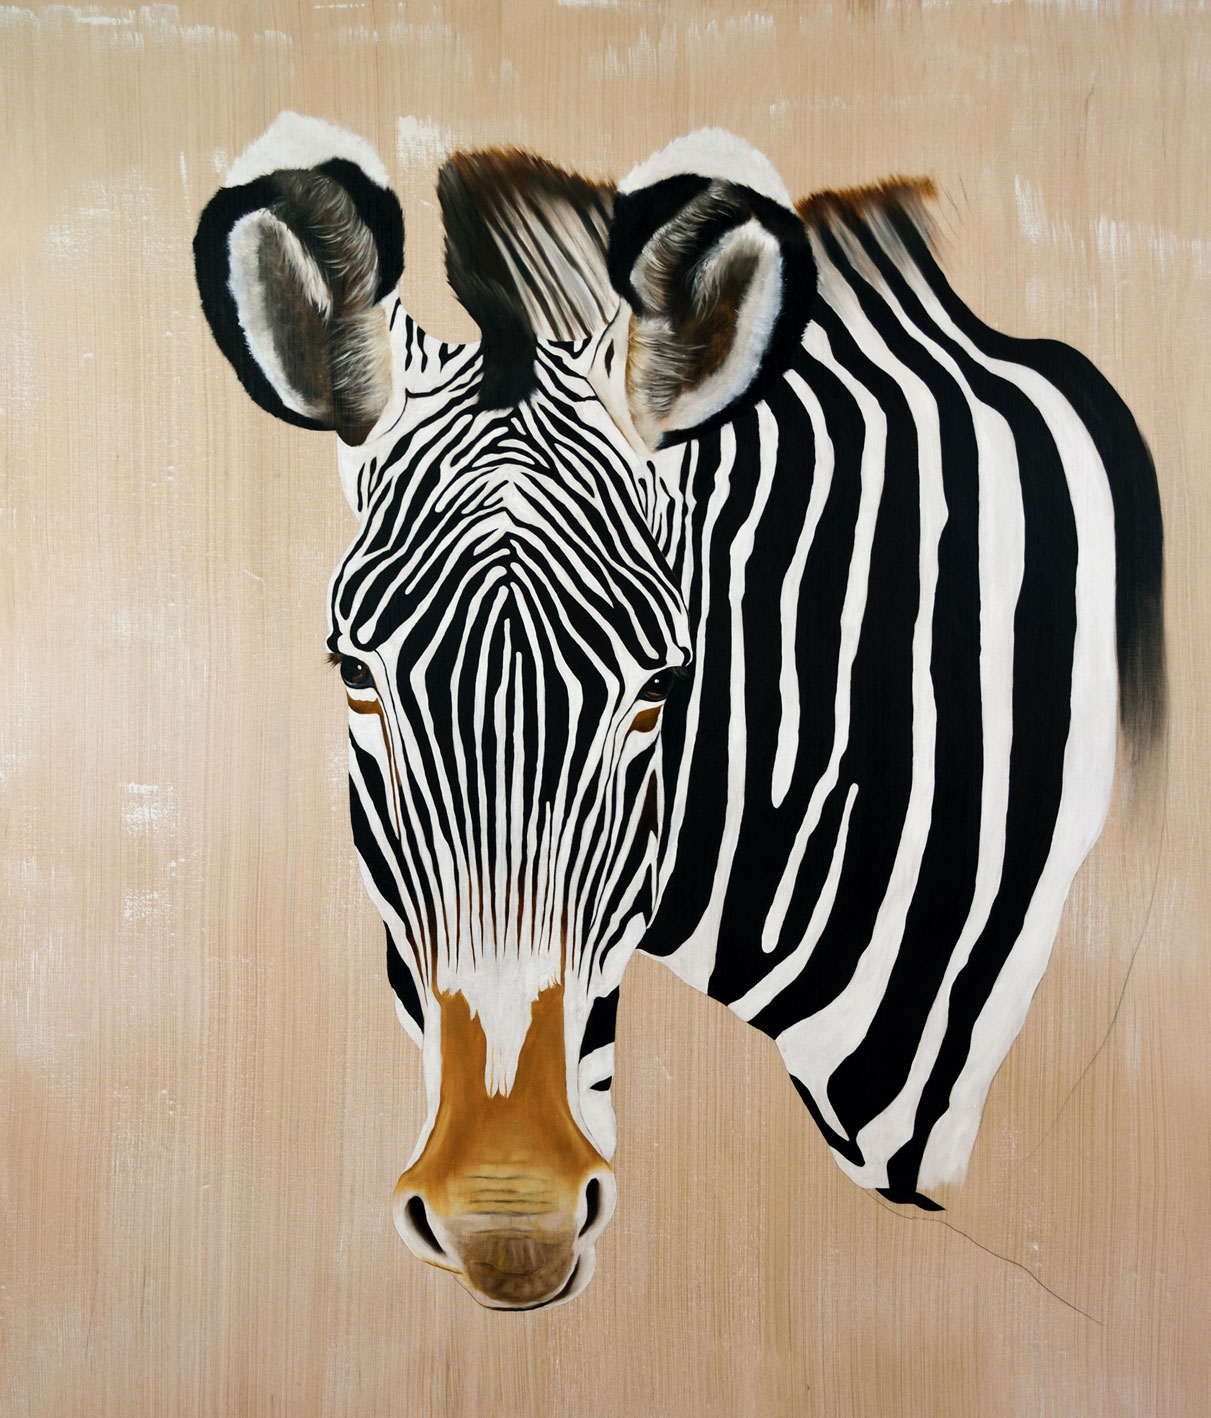 EQUUS-GREVYI divers Thierry Bisch painter animals painting art decoration hotel design interior luxury nature biodiversity conservation